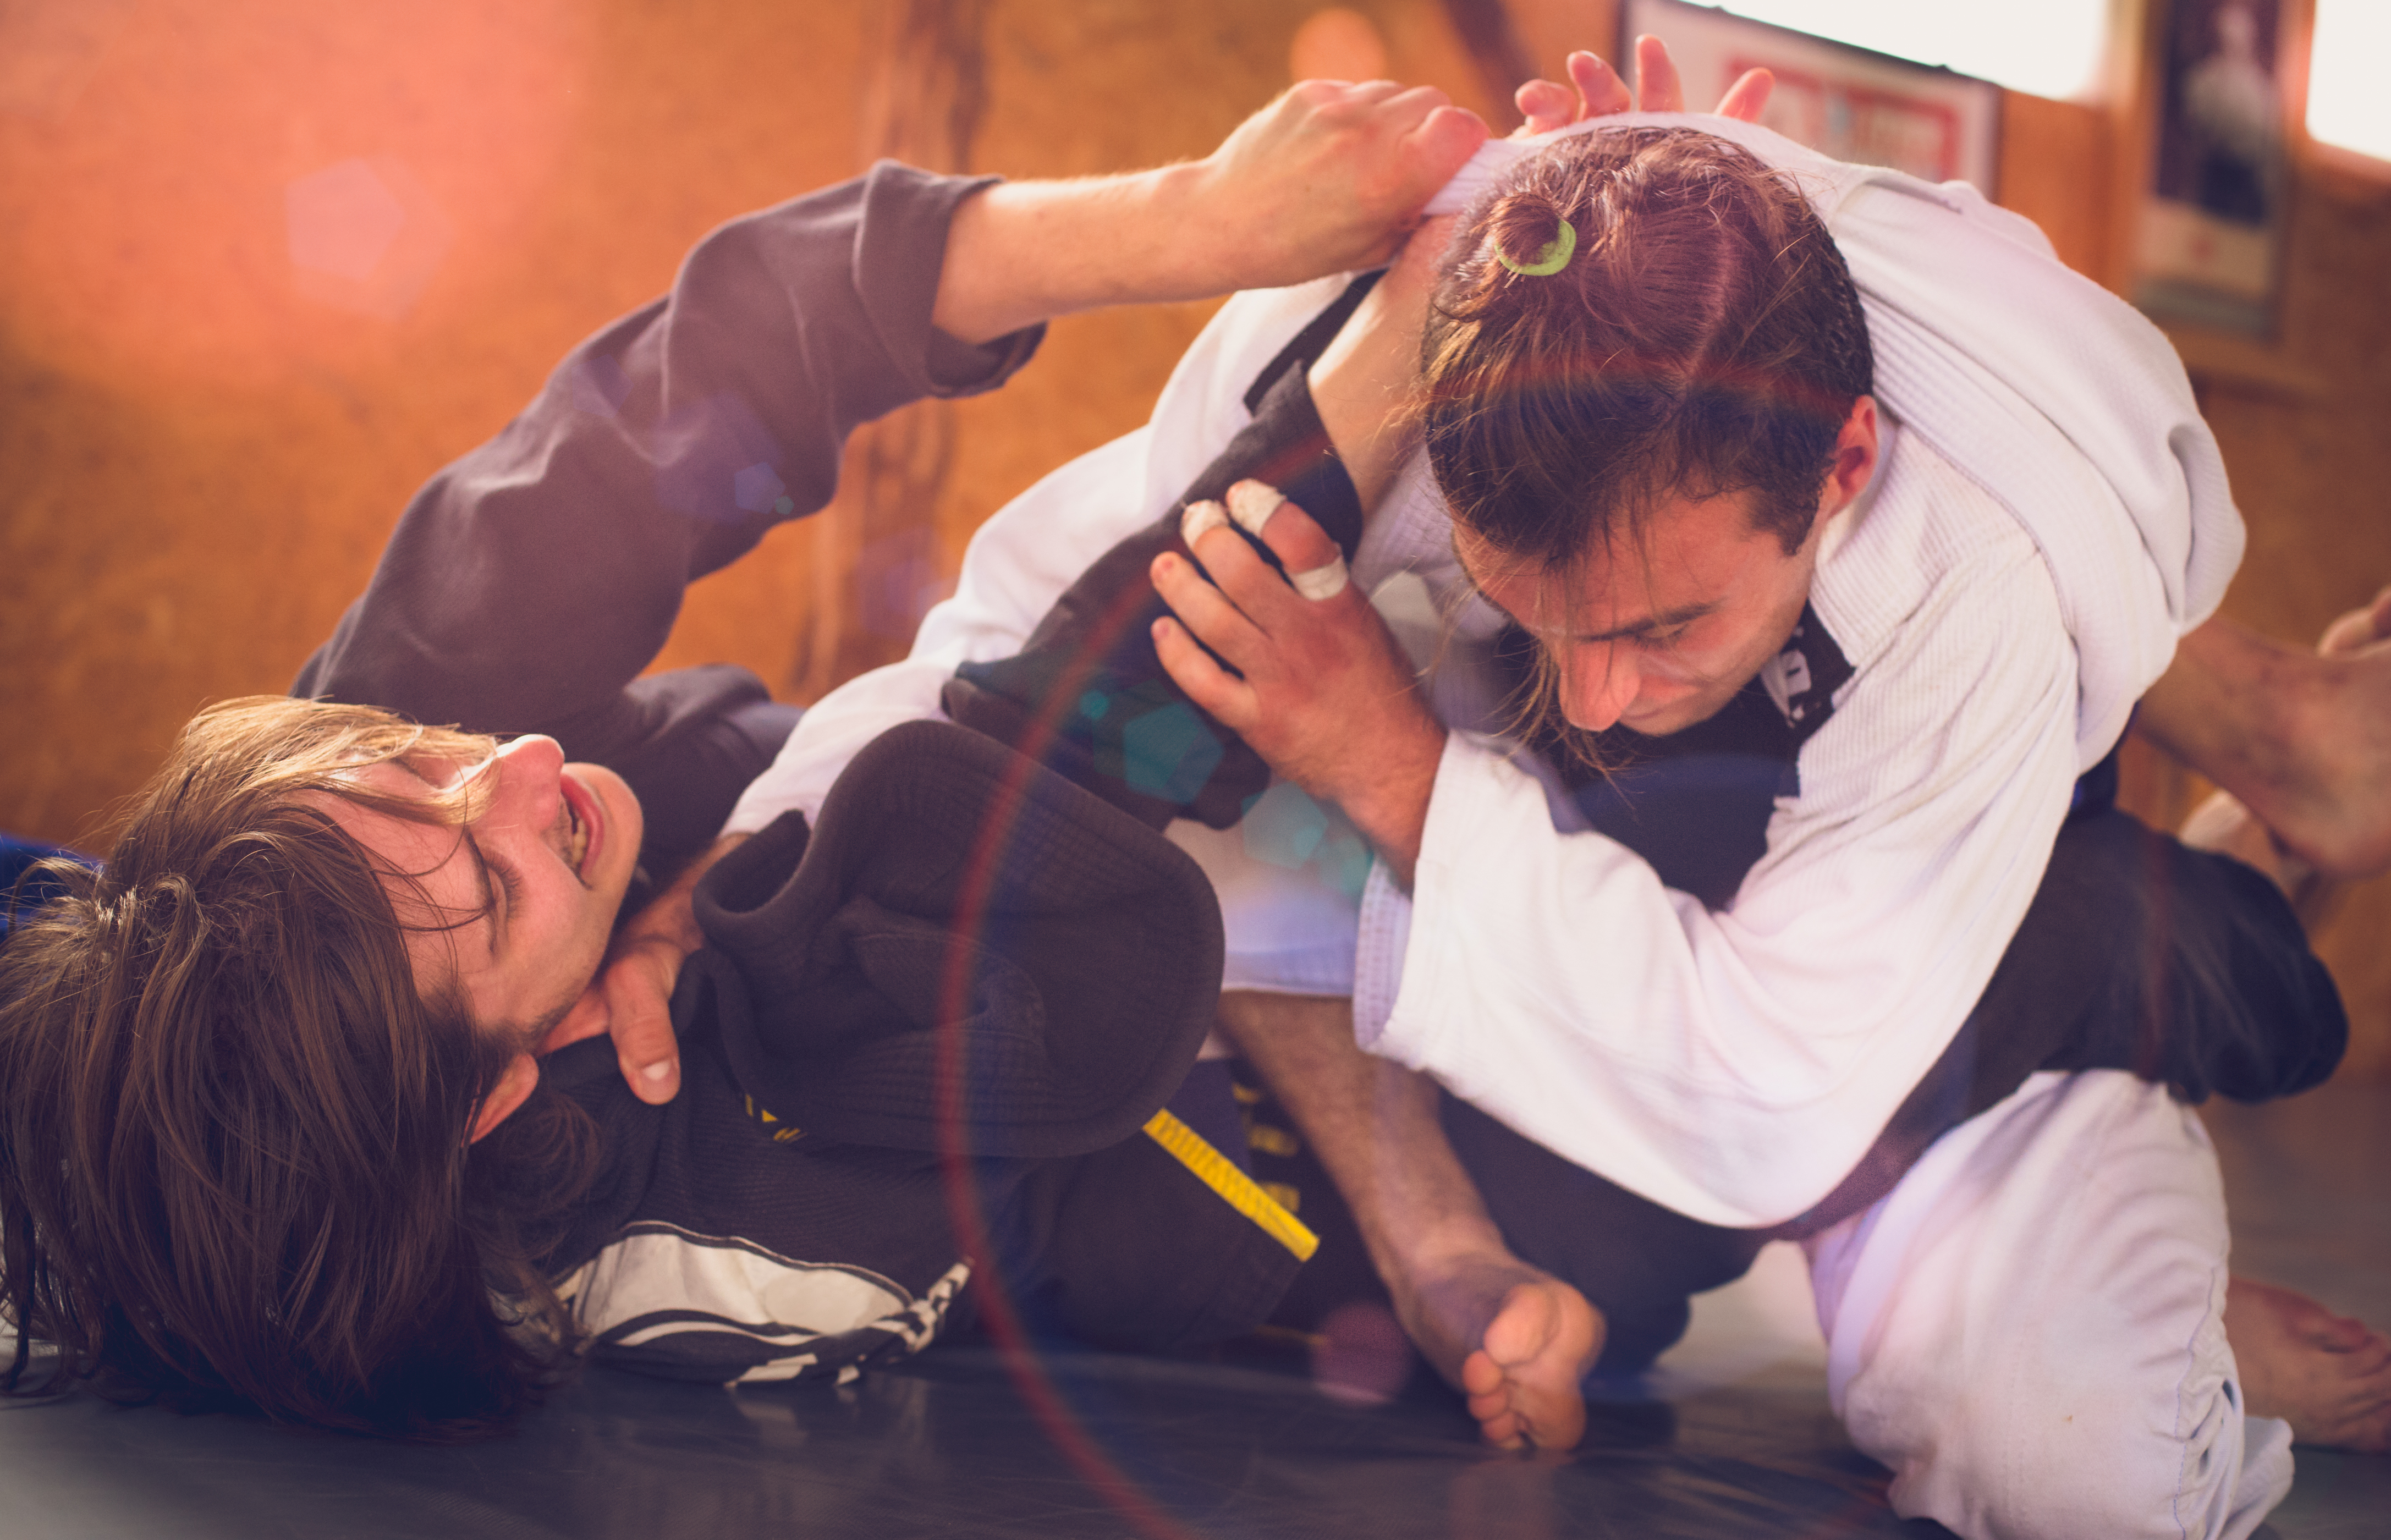 Powerlifting to Brazilian Jiu-Jitsu: Adapting as an Athlete